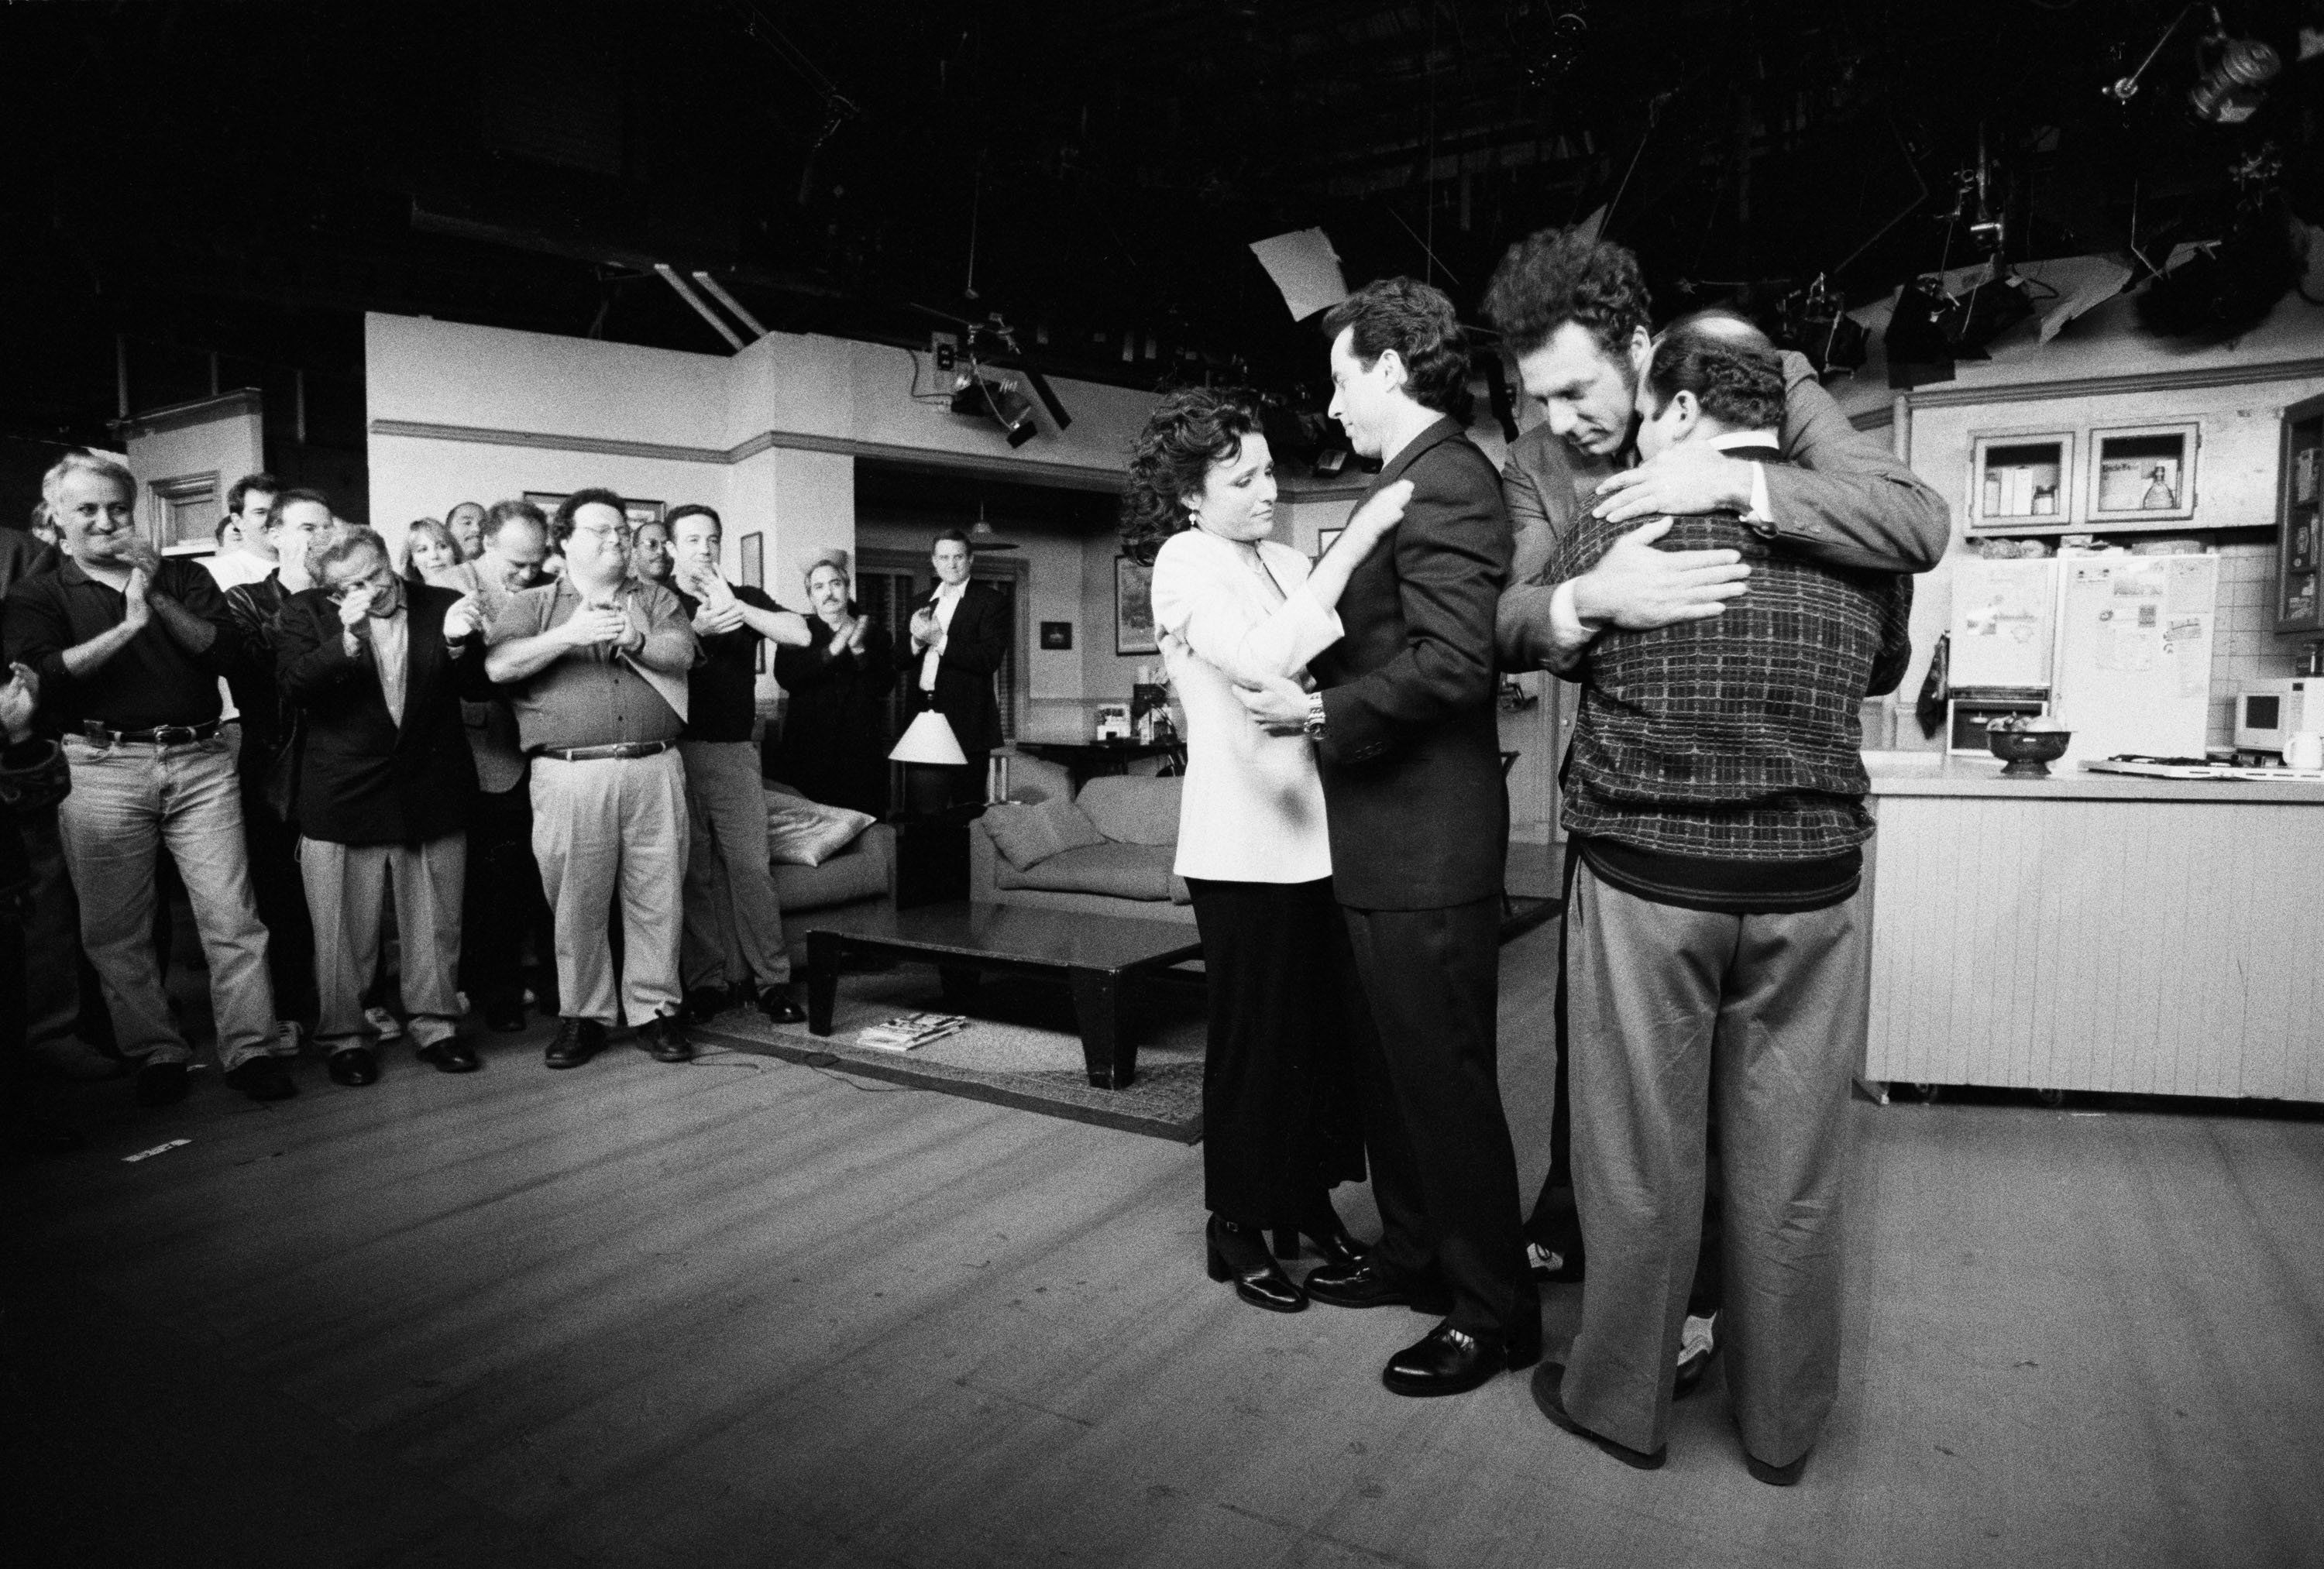 LOS ANGELES, CA - APRIL 3: (NO U.S. TABLOID SALES) Julia Louis-Dreyfus, Jerry Seinfeld, Michael Richards and Jason Alexander embrace on the set of the show 'Seinfeld' during the last days of shooting, April 3, 1998 in Los Angeles, California.  (Photo by David Hume Kennerly/Getty Images)